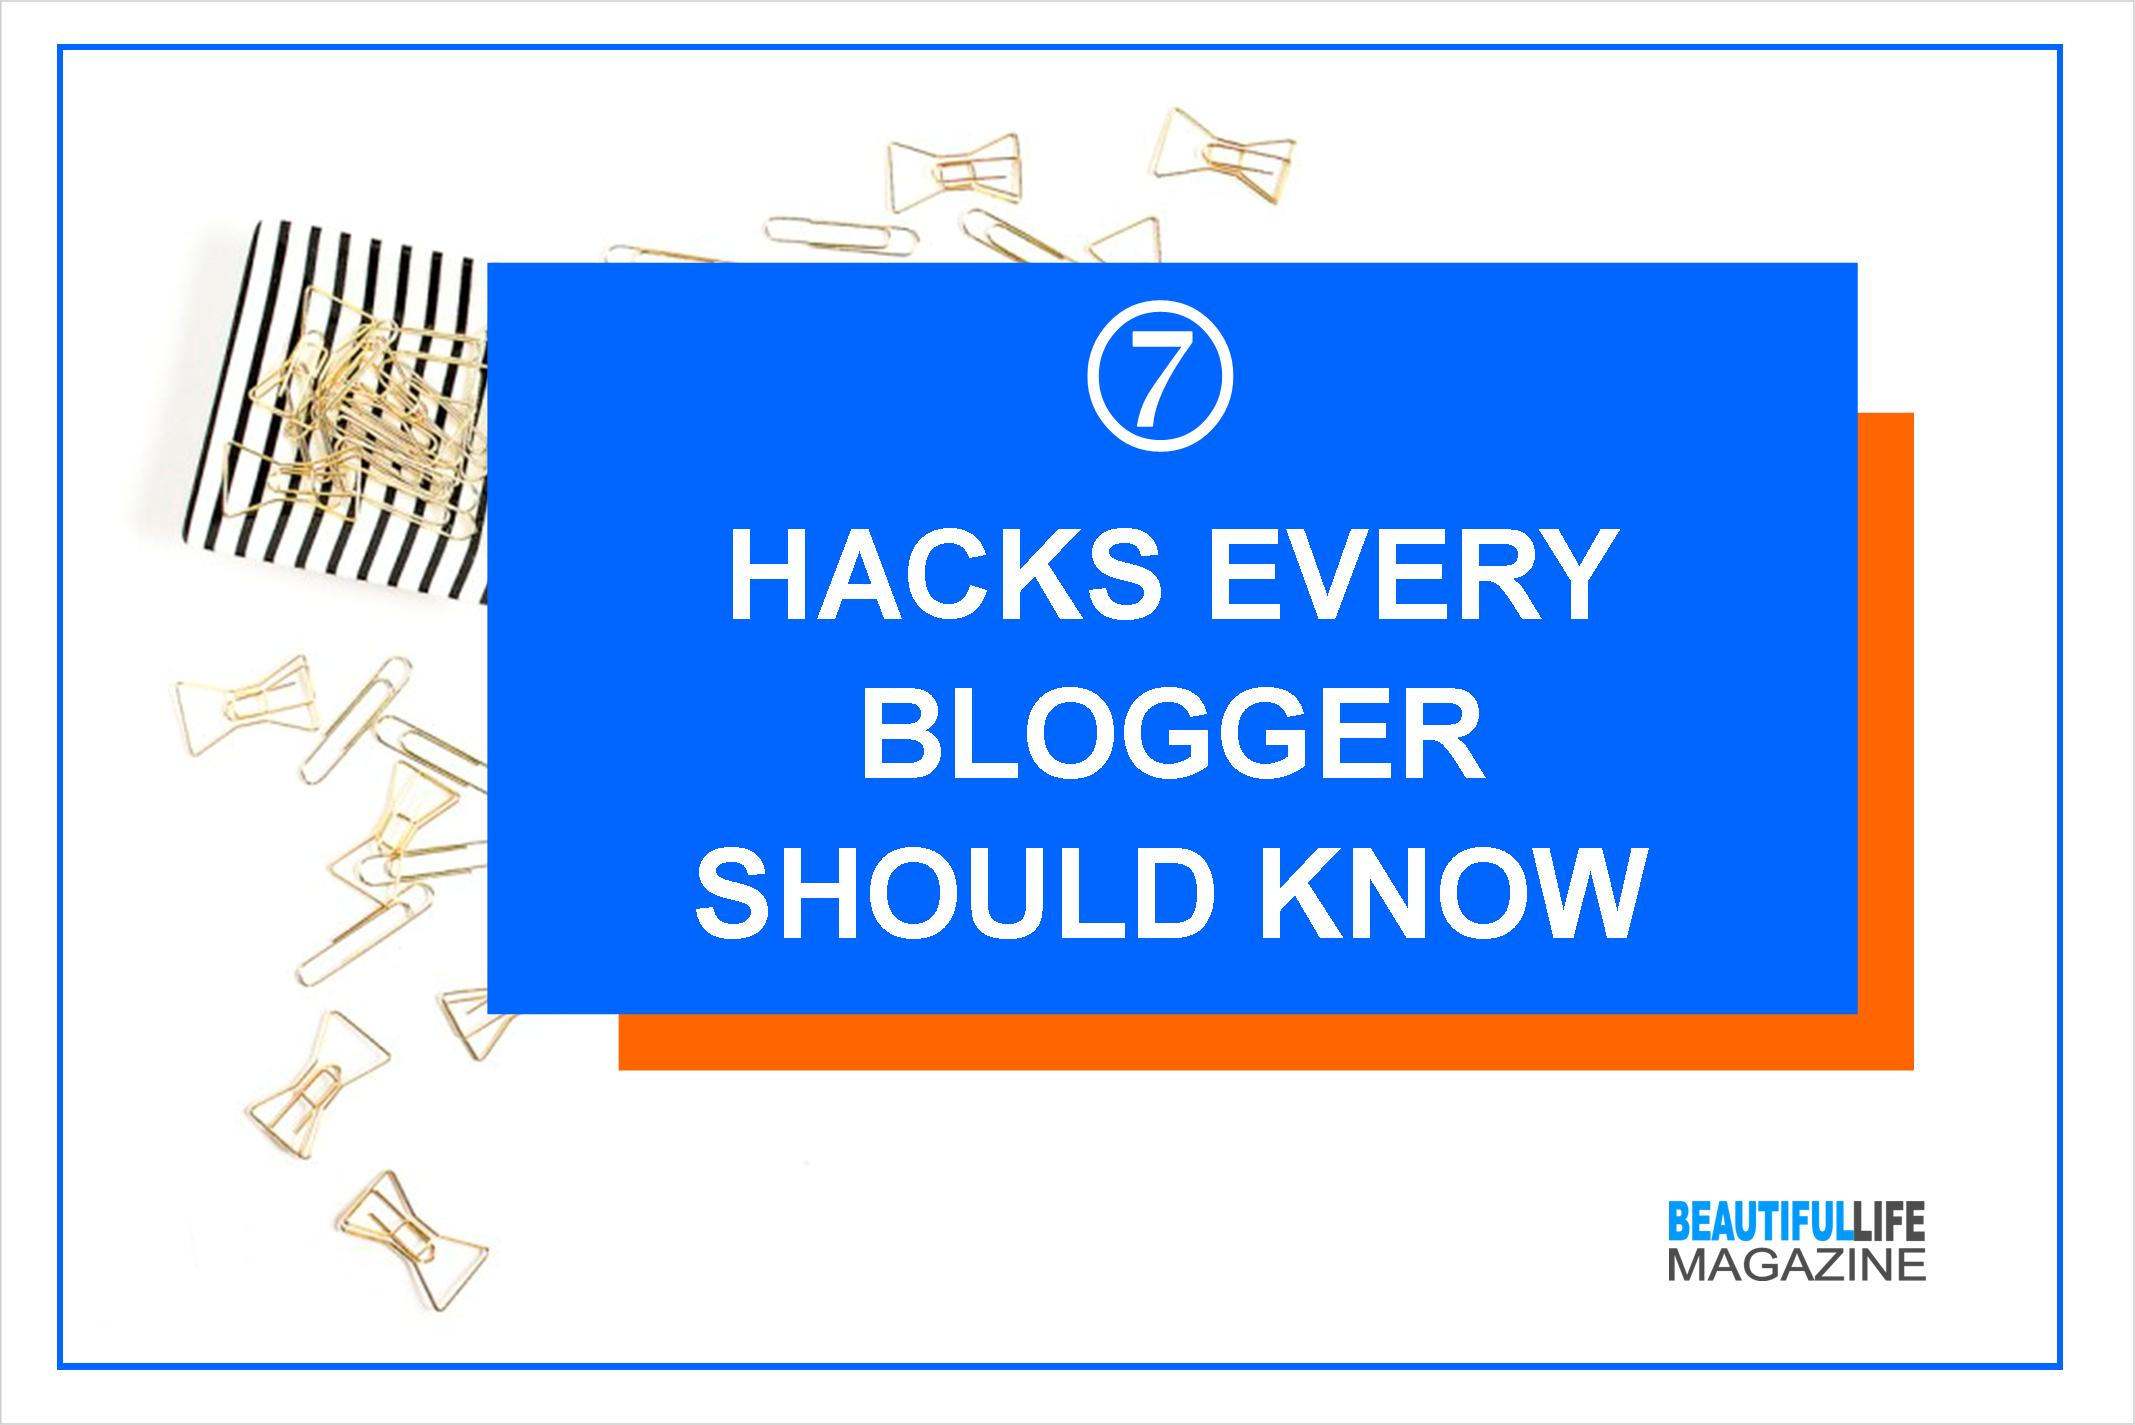 Over the past few years I learned a few strategies that help me keep the blog flowing. Today I am sharing seven hacks that will hopefully make your blogging life easier.